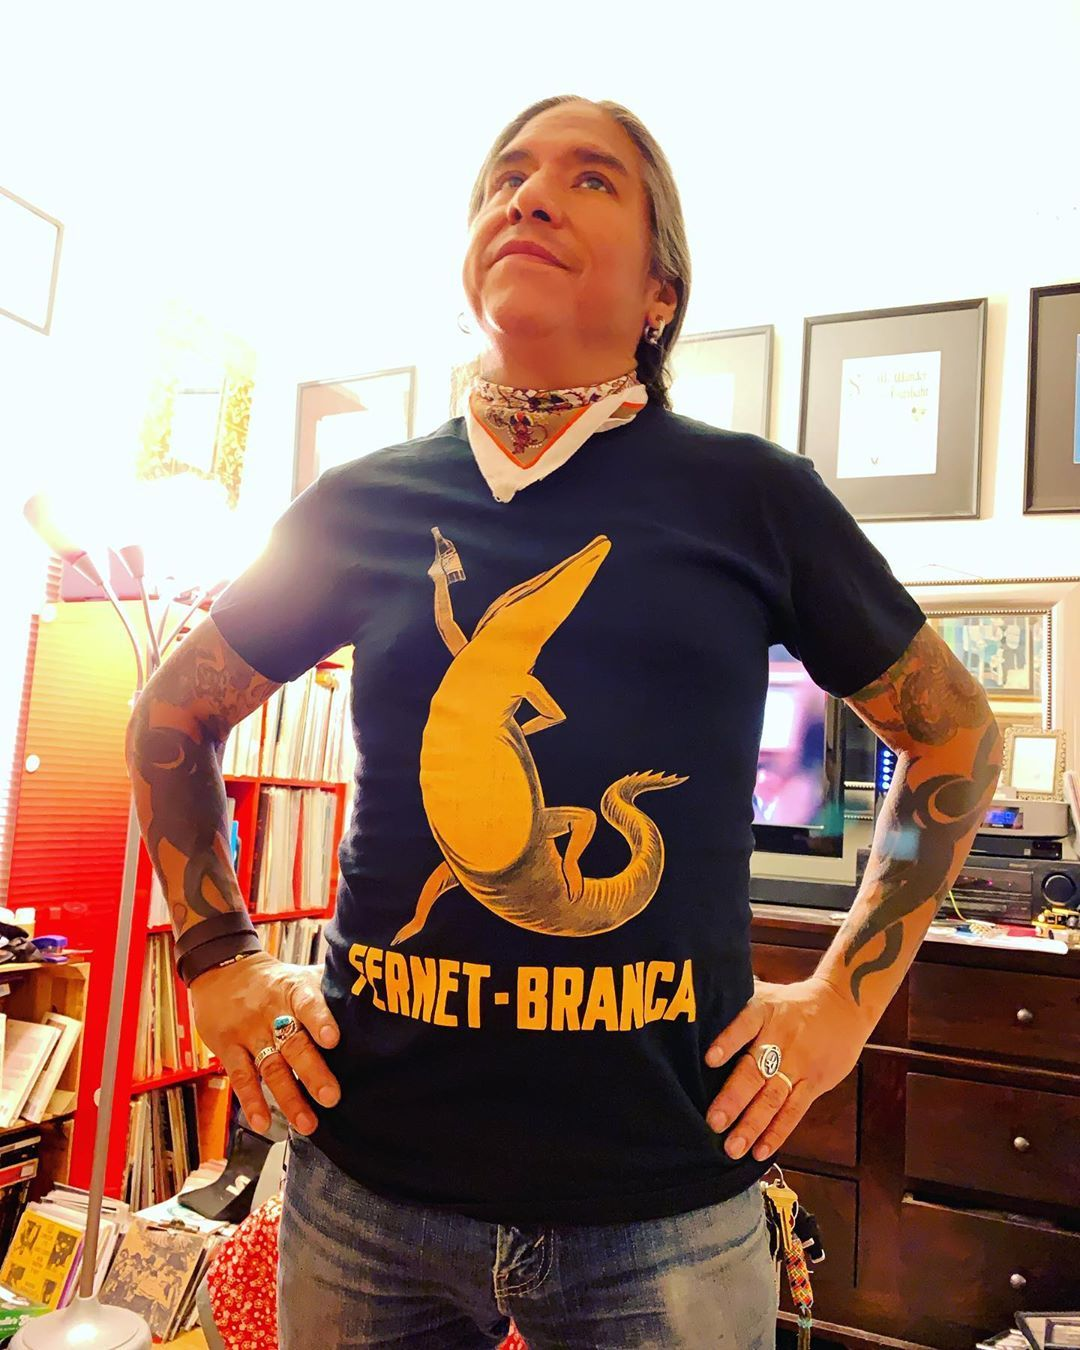 Crocodile Fernet Branca Shirts photo review